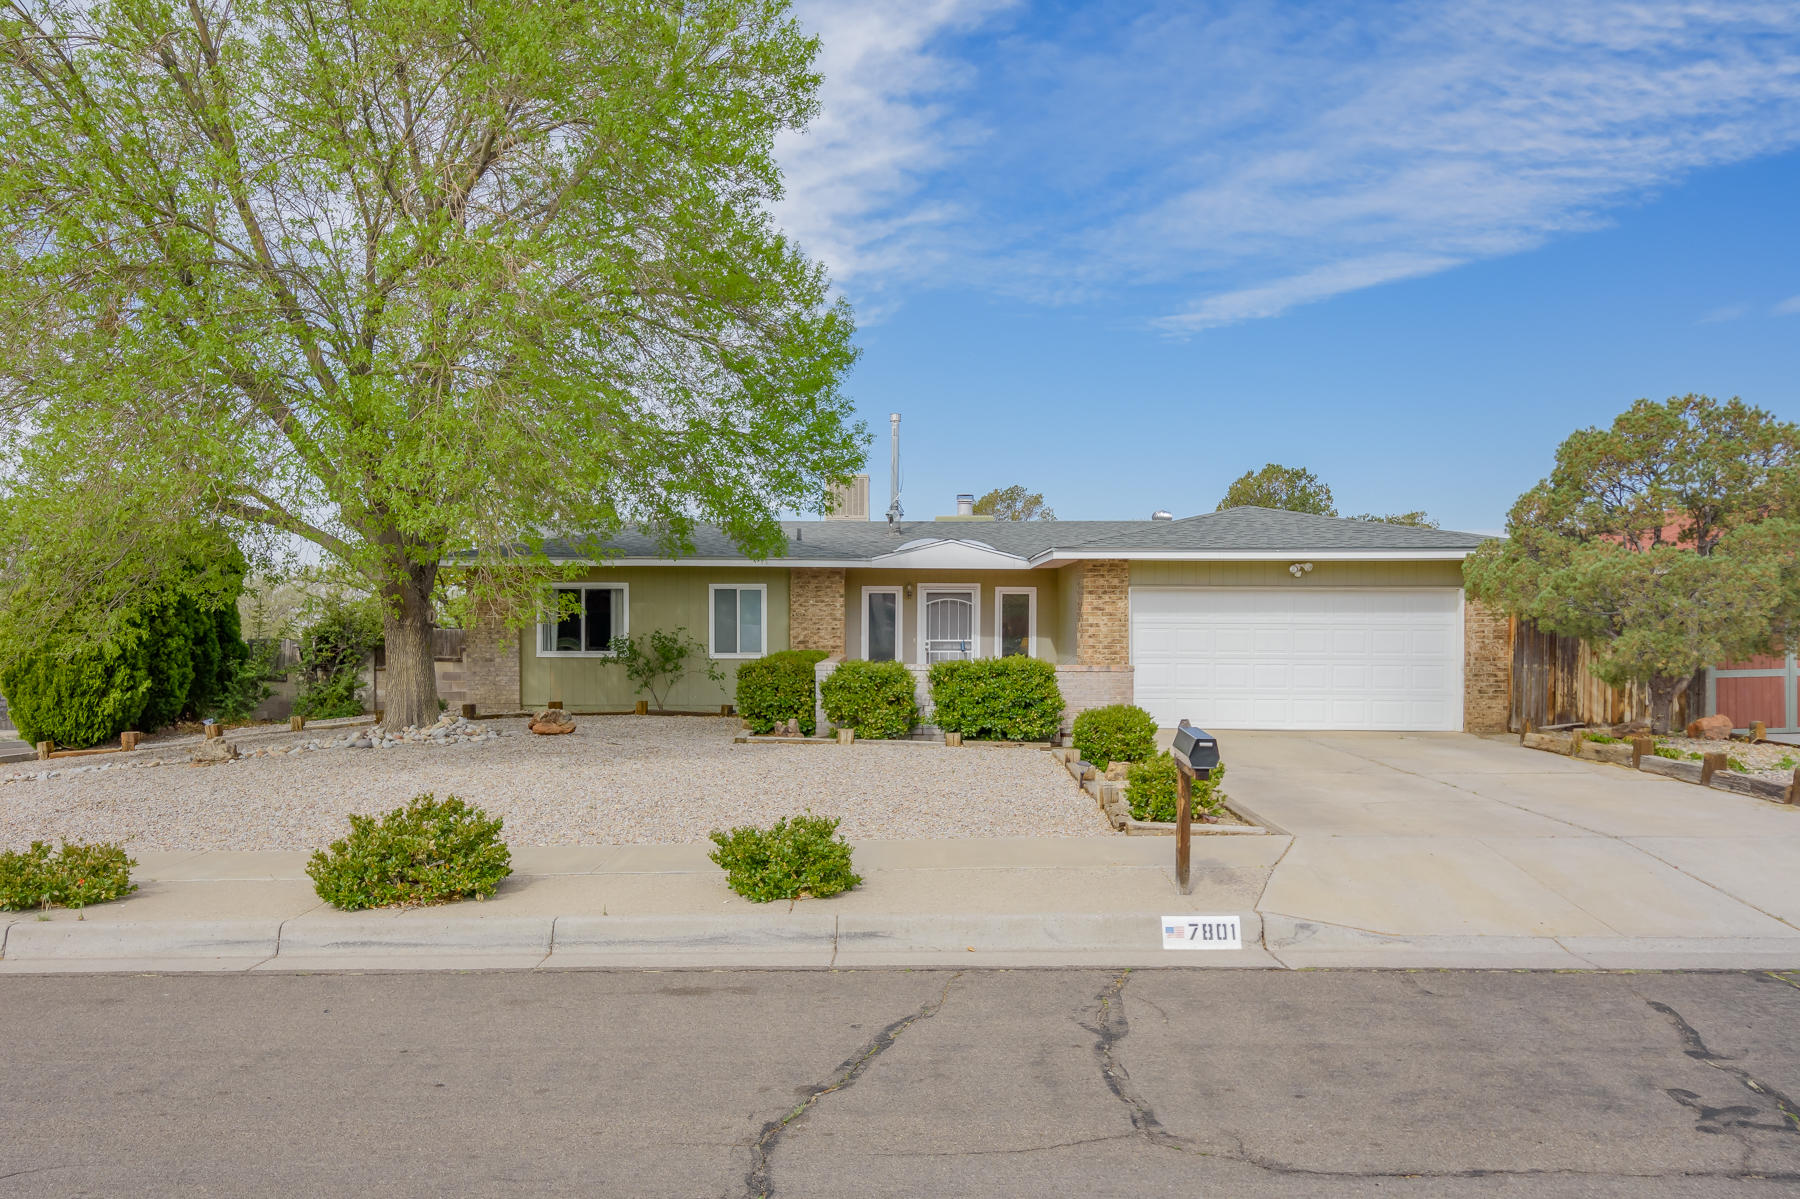 OPEN HOUSE SATURDAY 4/17 FROM 1-2:30PM. Lovely, light-filled single story home in La Cueva HS district.  Many updates!  Kitchen is bright and open to family room.  Stainless steel appliances with gas range.  New microwave and dishwasher.  Huge pantry too!  Plenty of room for dining.   Spacious Family room with fireplace, and doors to the outside patio.  The backyard is large for all the outside toys and access is possible.  3 bedrooms are down the hall. The master has it's own 3/4 bath and large closet.  2 more bedrooms with good-size closets.  Full bath and.. a separate laundry room near the bedrooms, actually near the laundry!  Tile and wood floors, no carpet! Front yard is easy maintenance, and enjoy the views from the courtyard.